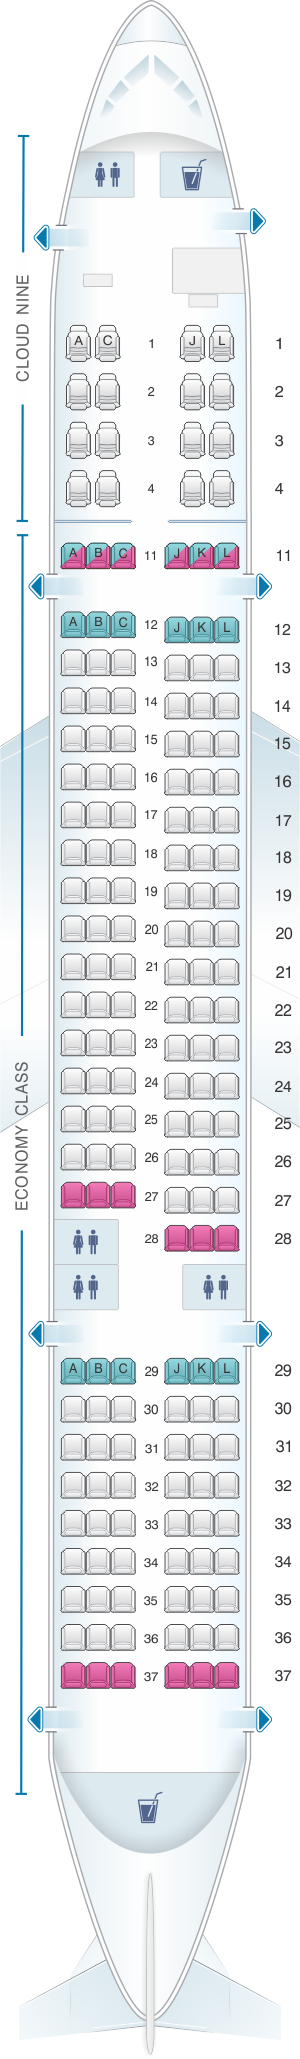 Seat map for Ethiopian Boeing B757 200 ER 175pax